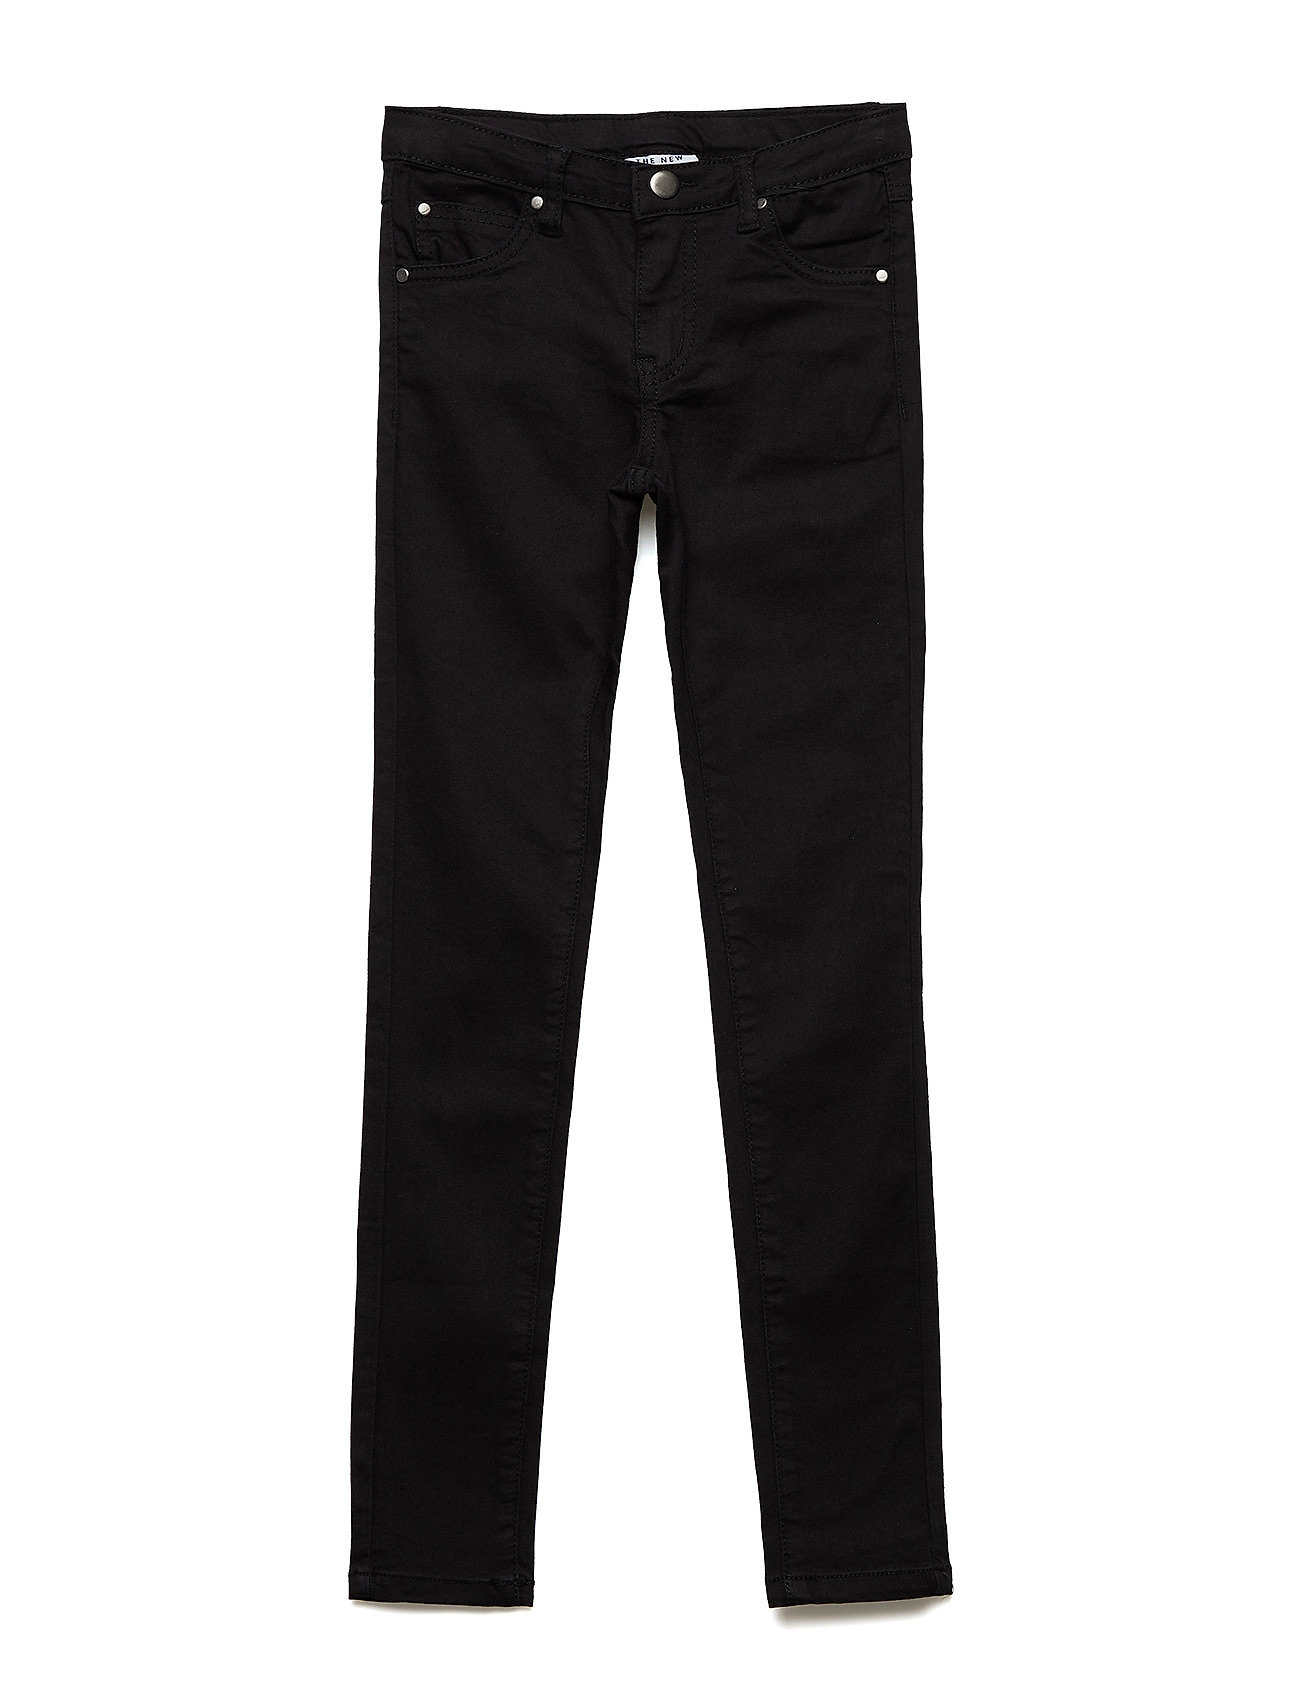 The New THE NEW SUPER SLIM JEANS - BLACK